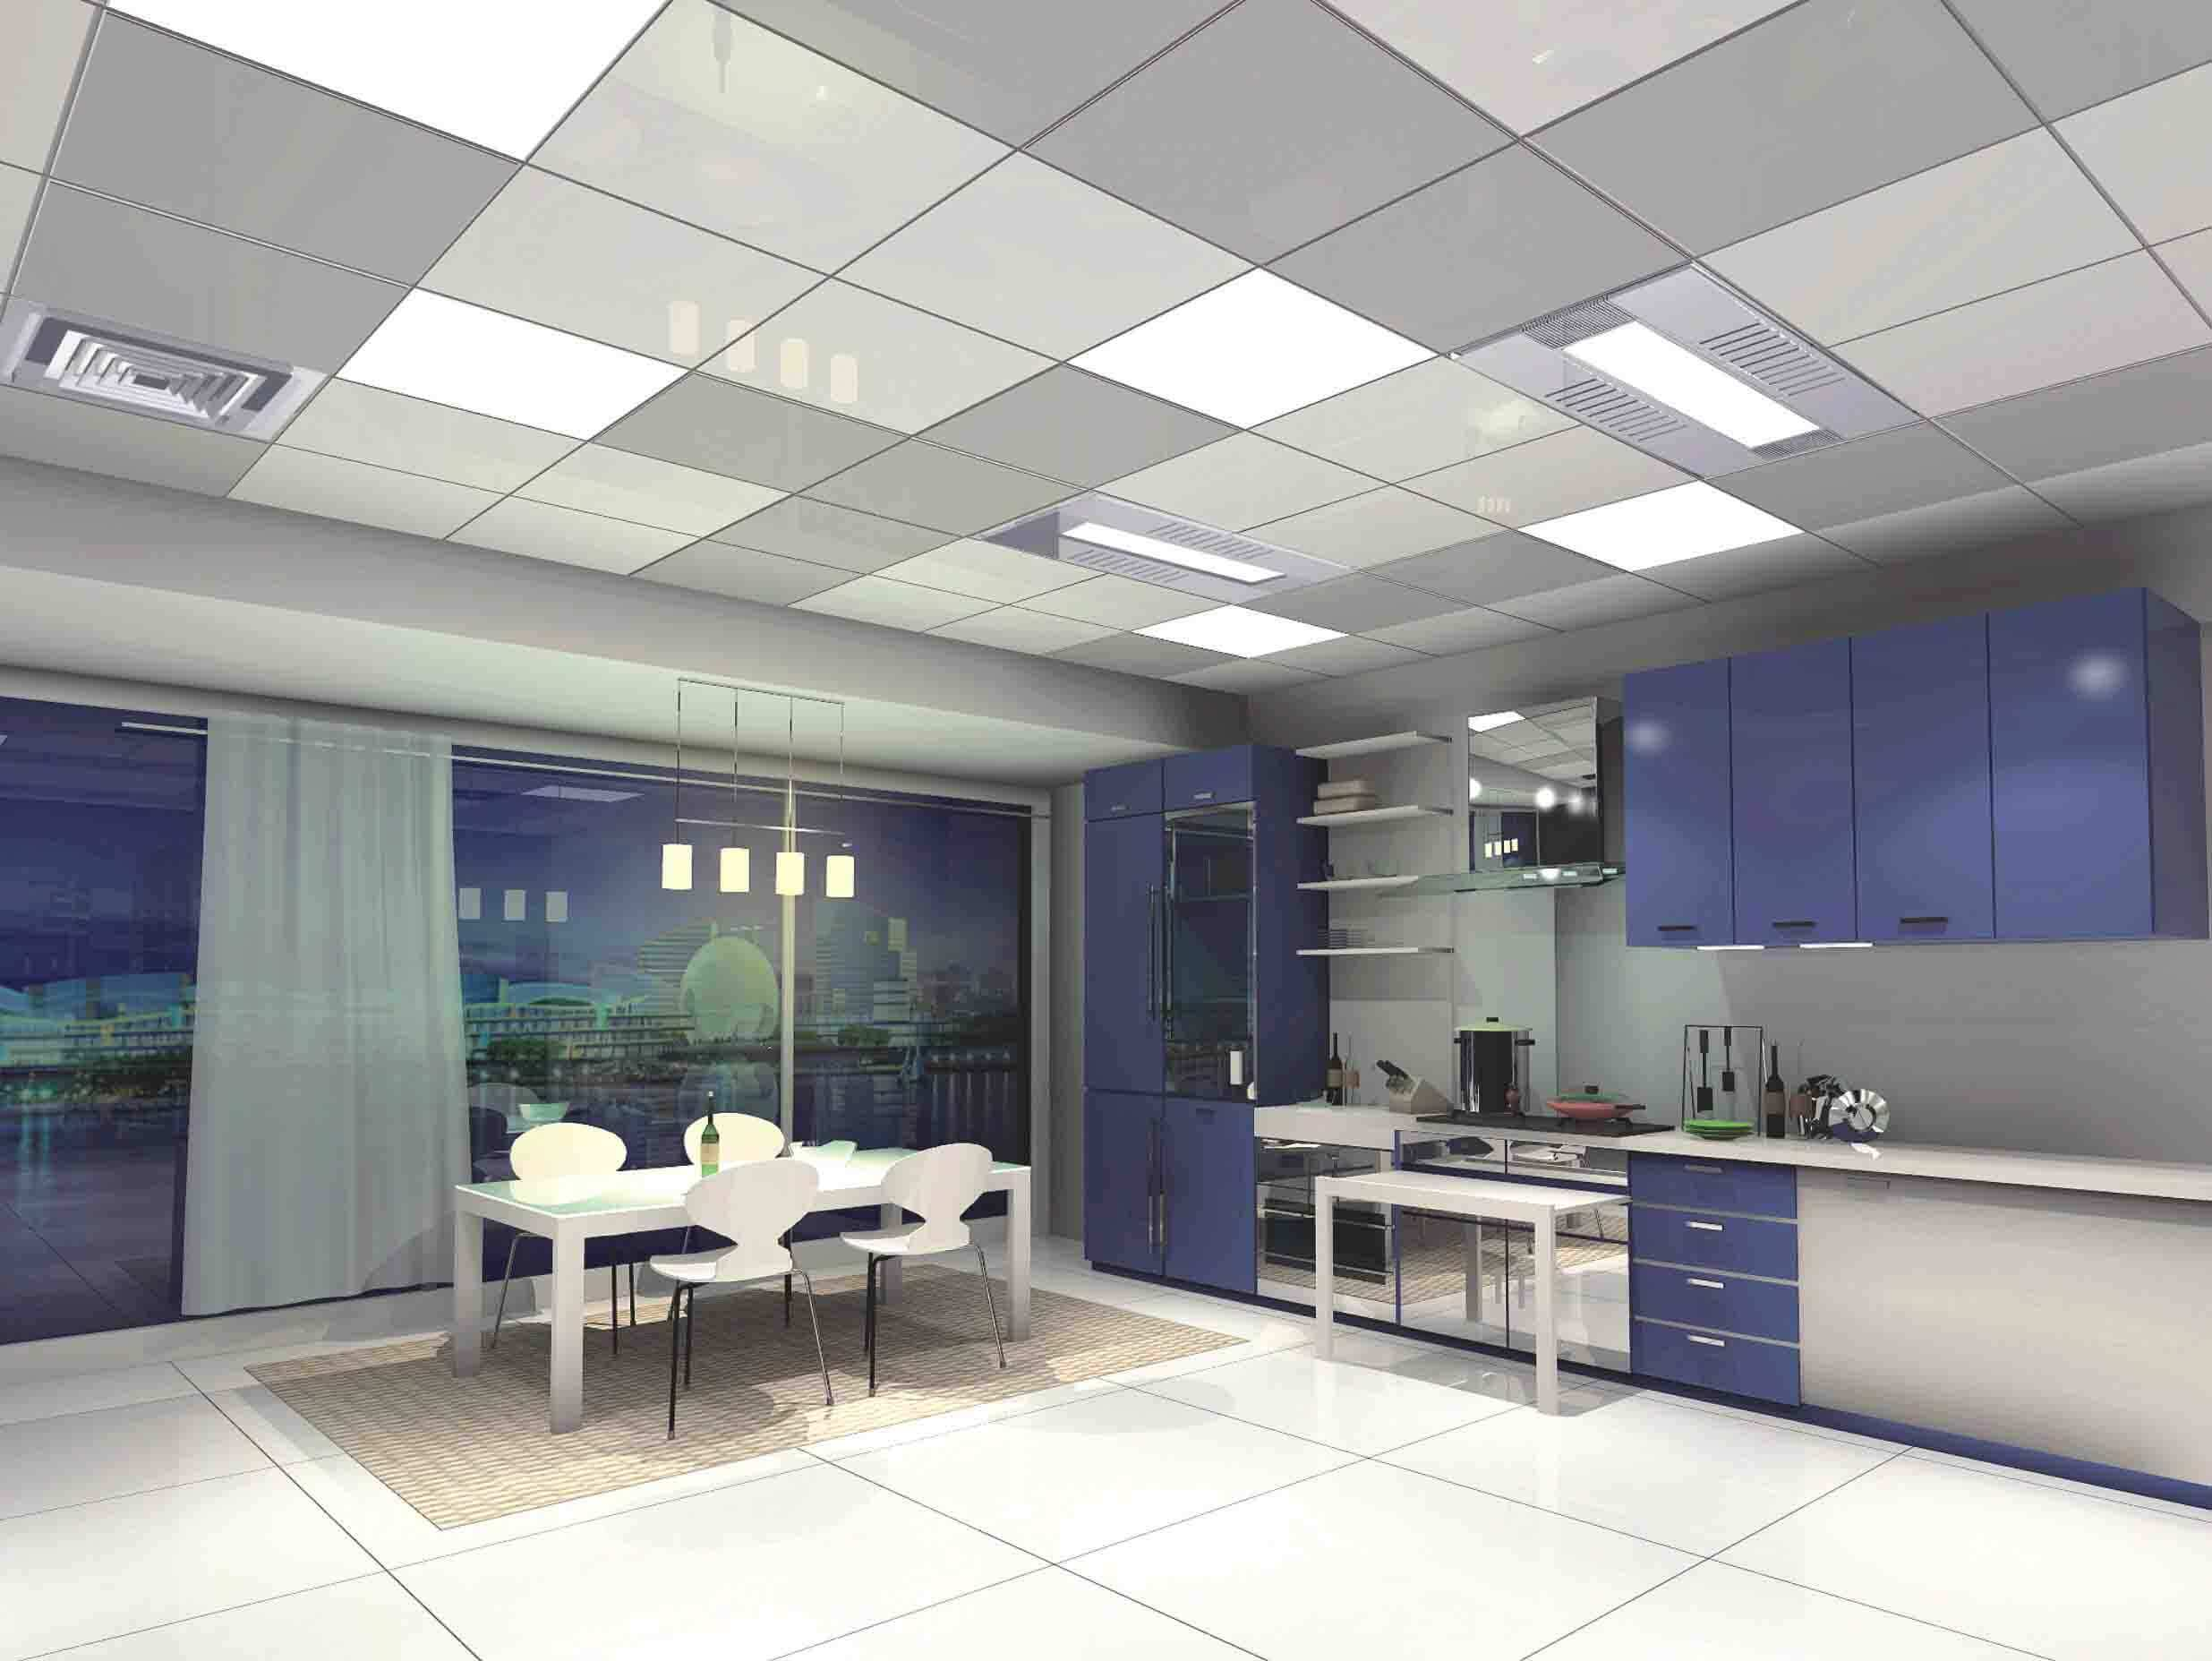 How about the interior ceiling decoration effect of aluminum clip in ceiling?